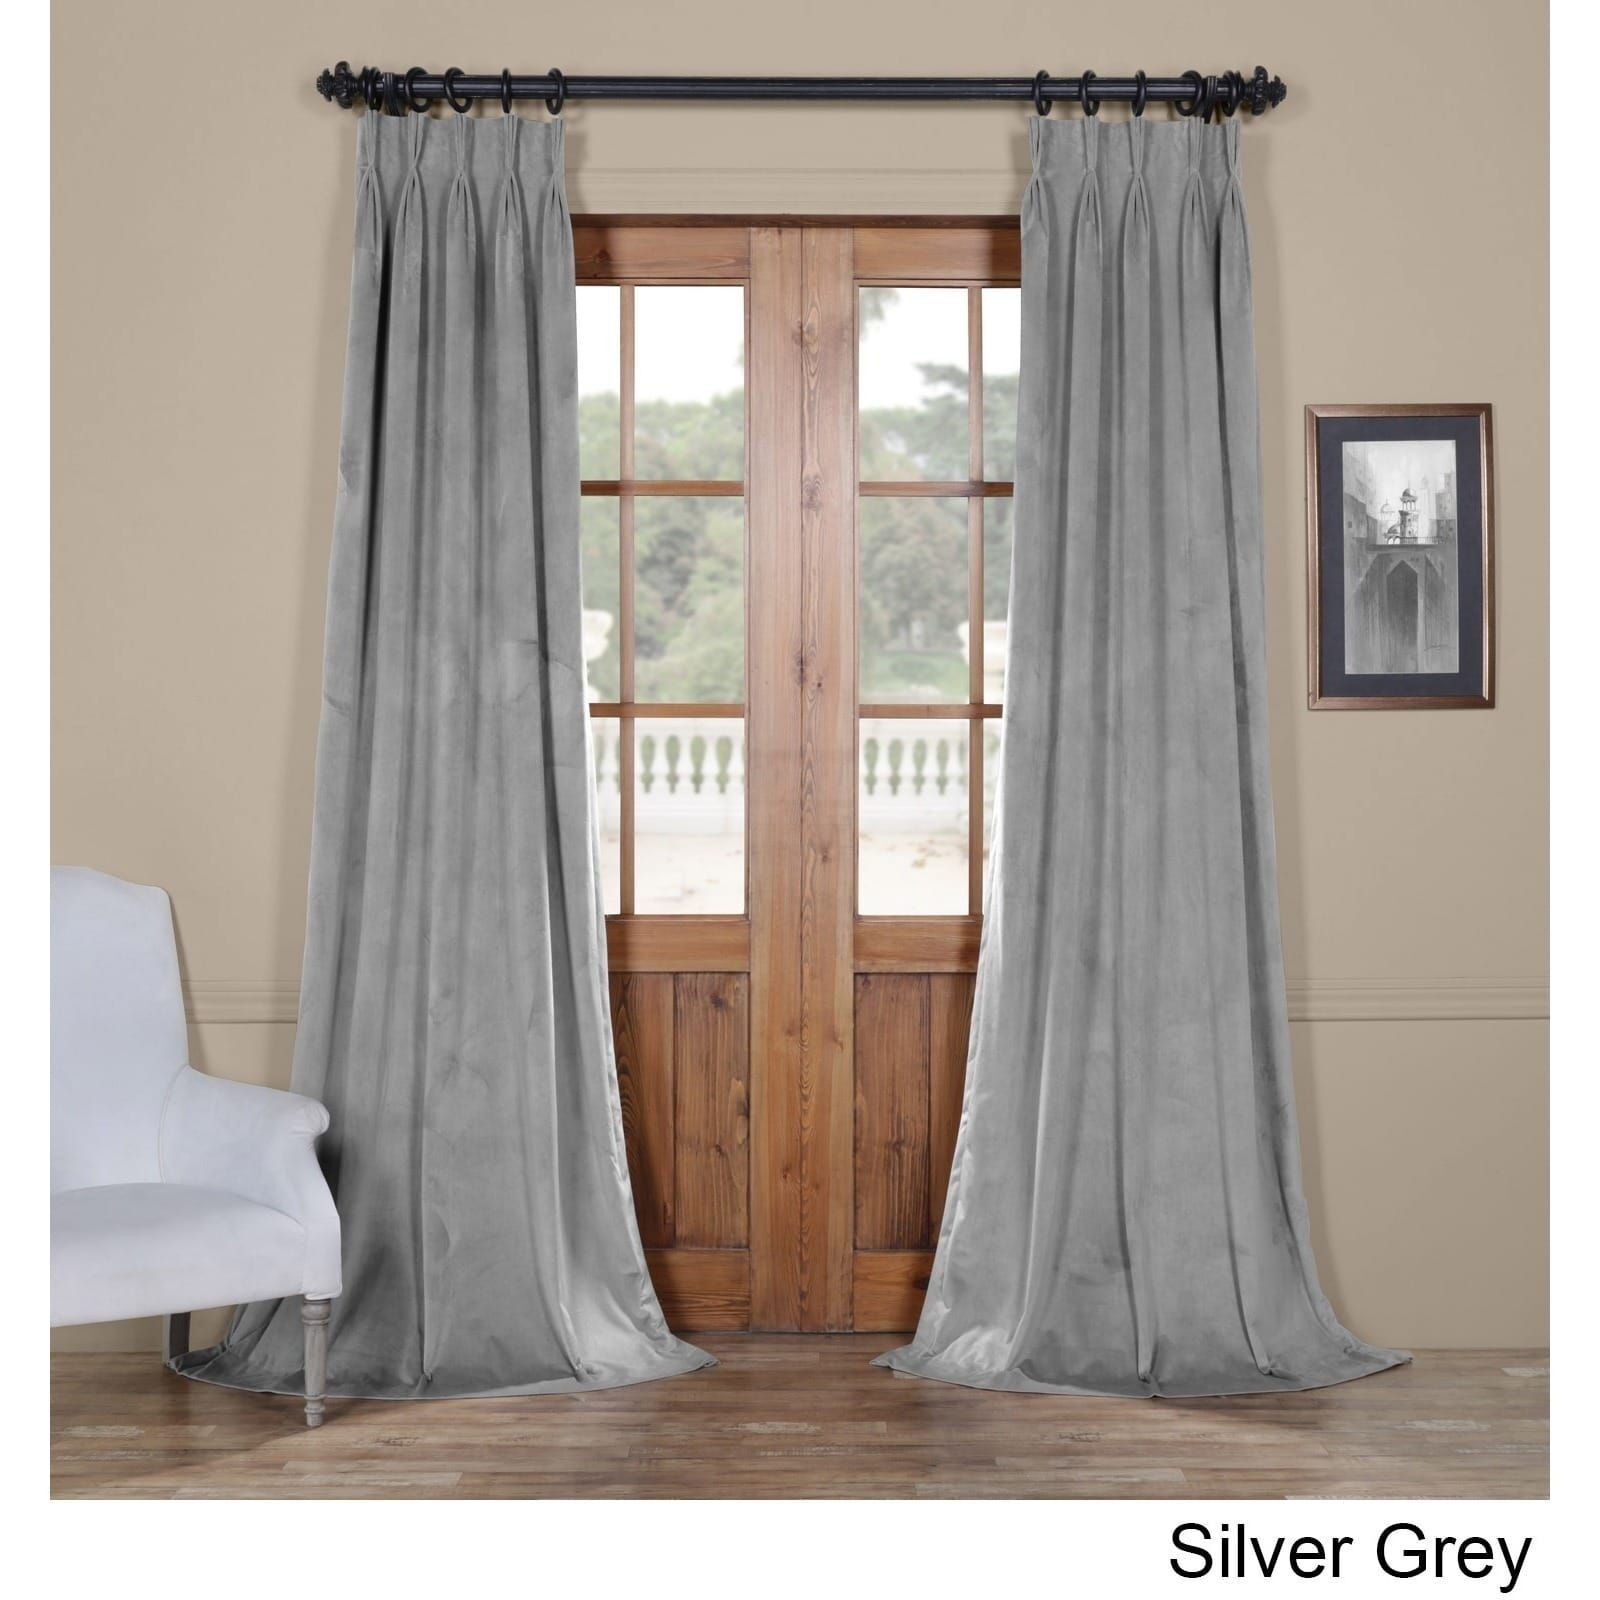 How To Choose Curtains & Drapes